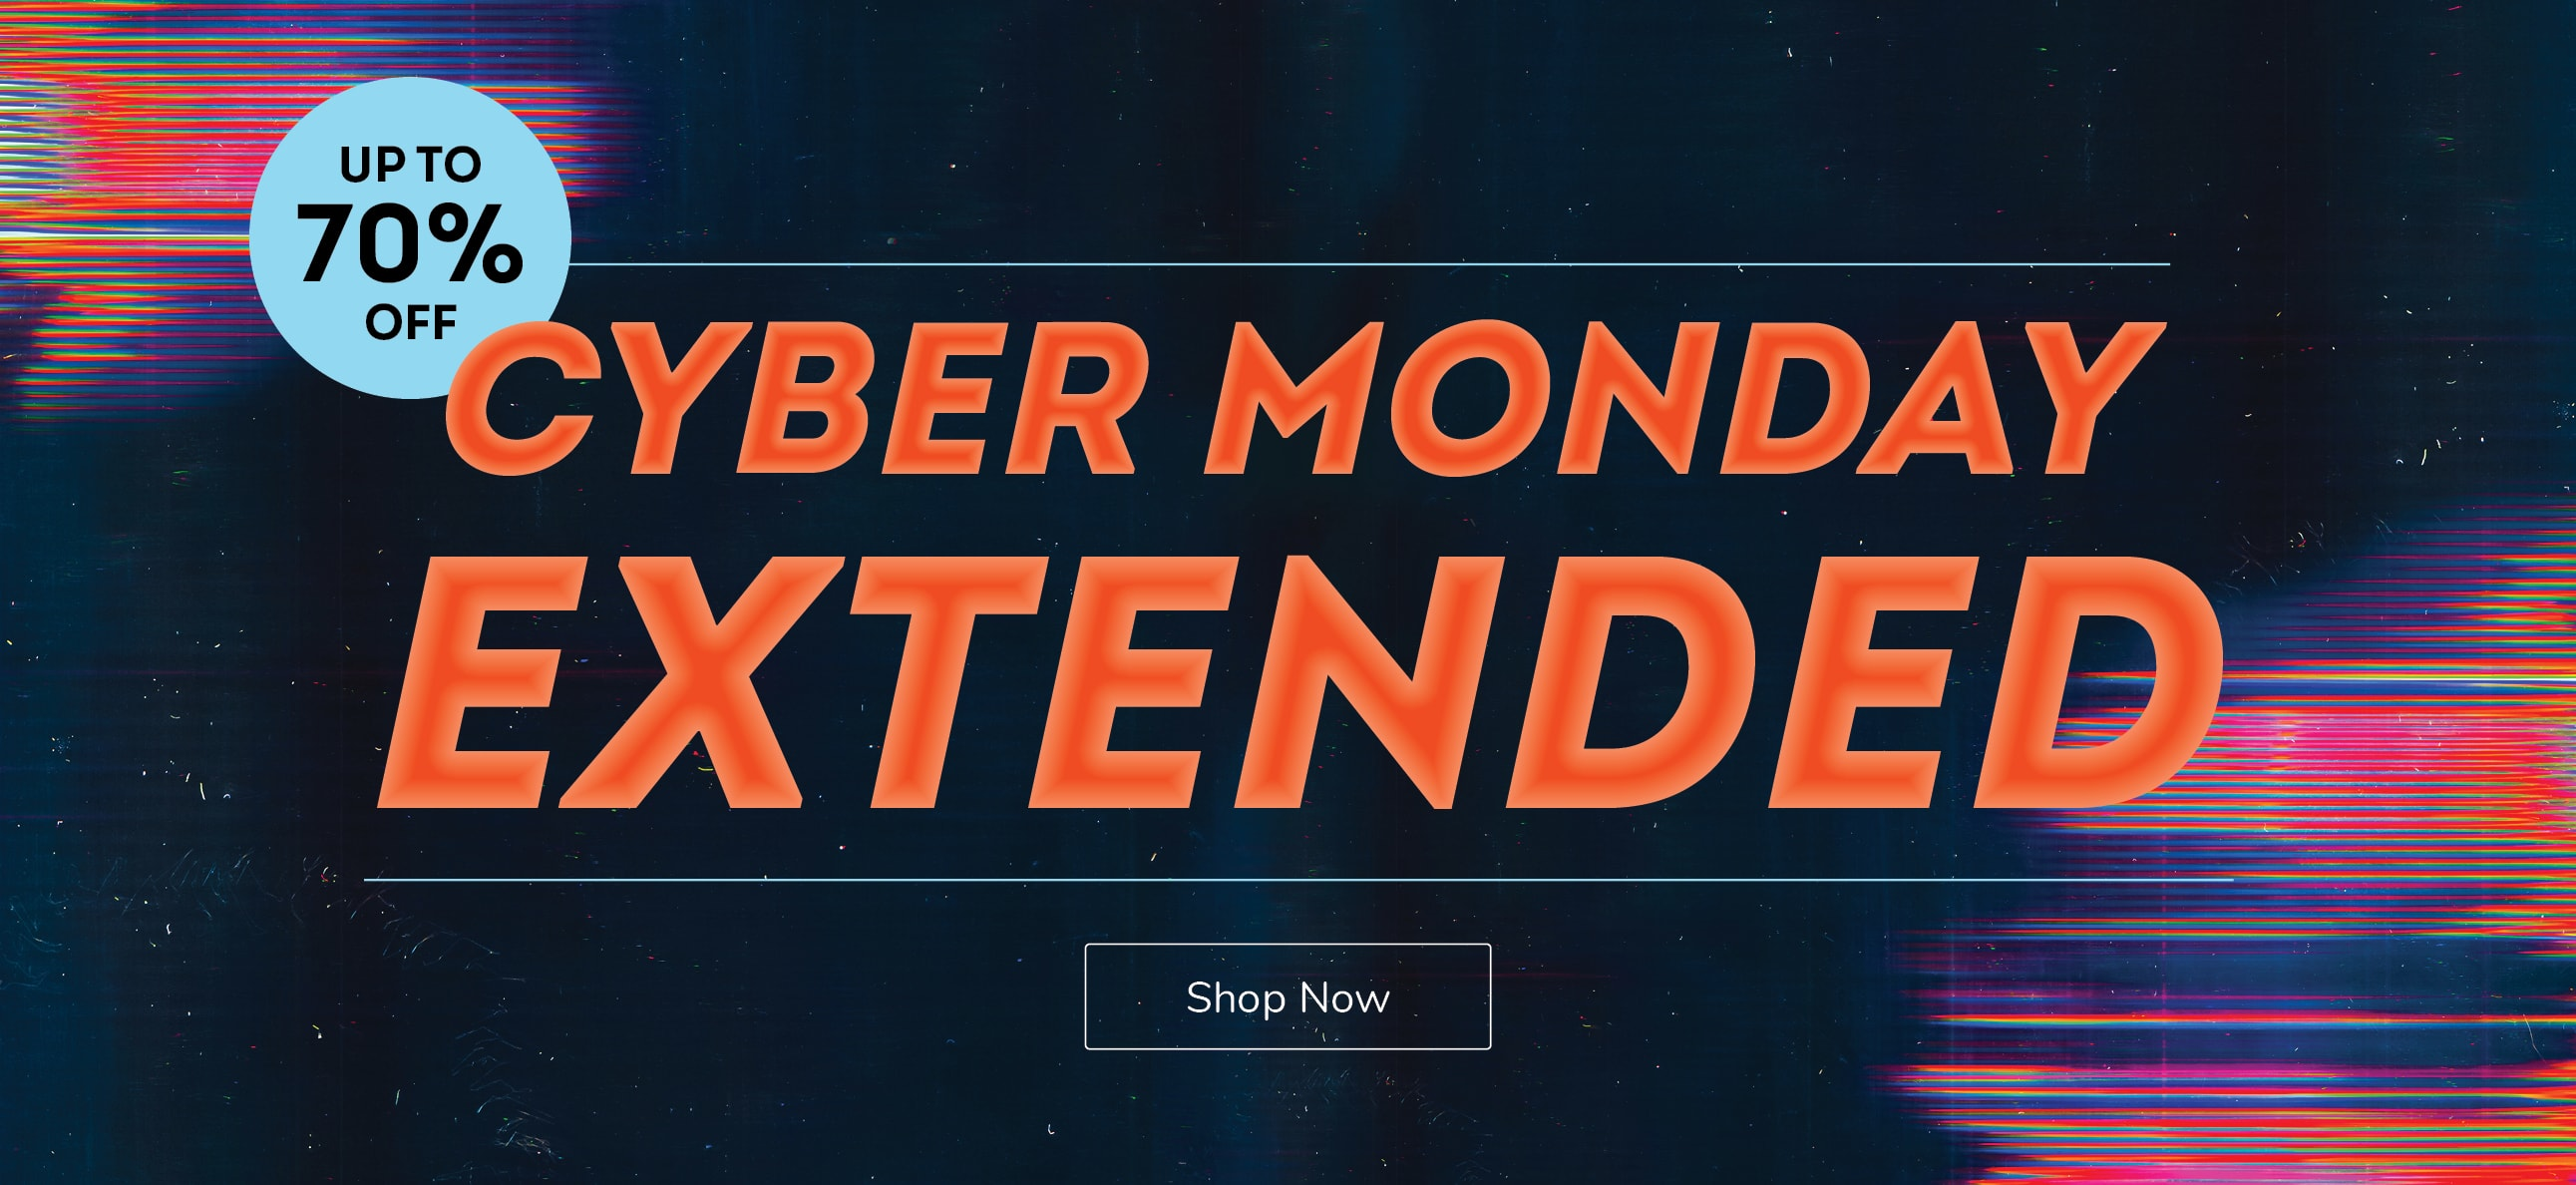 Cyber Monday Extended